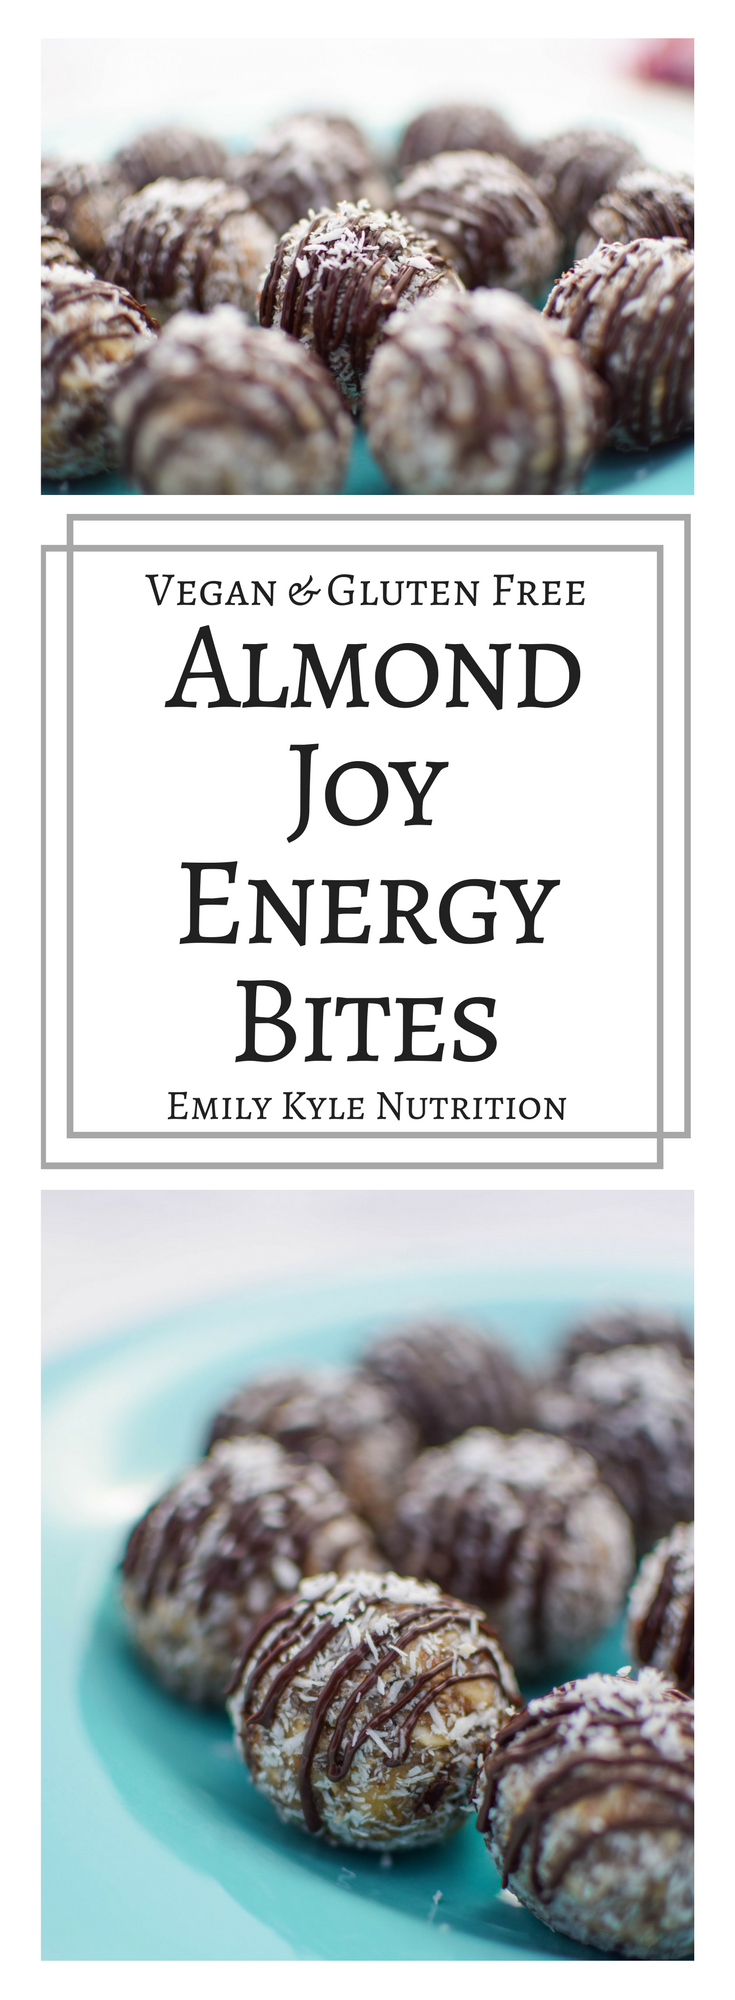 Every dessert should be nutritious and delicious!! Get the best of both worlds with these vegan and gluten-free friendly energy bites.